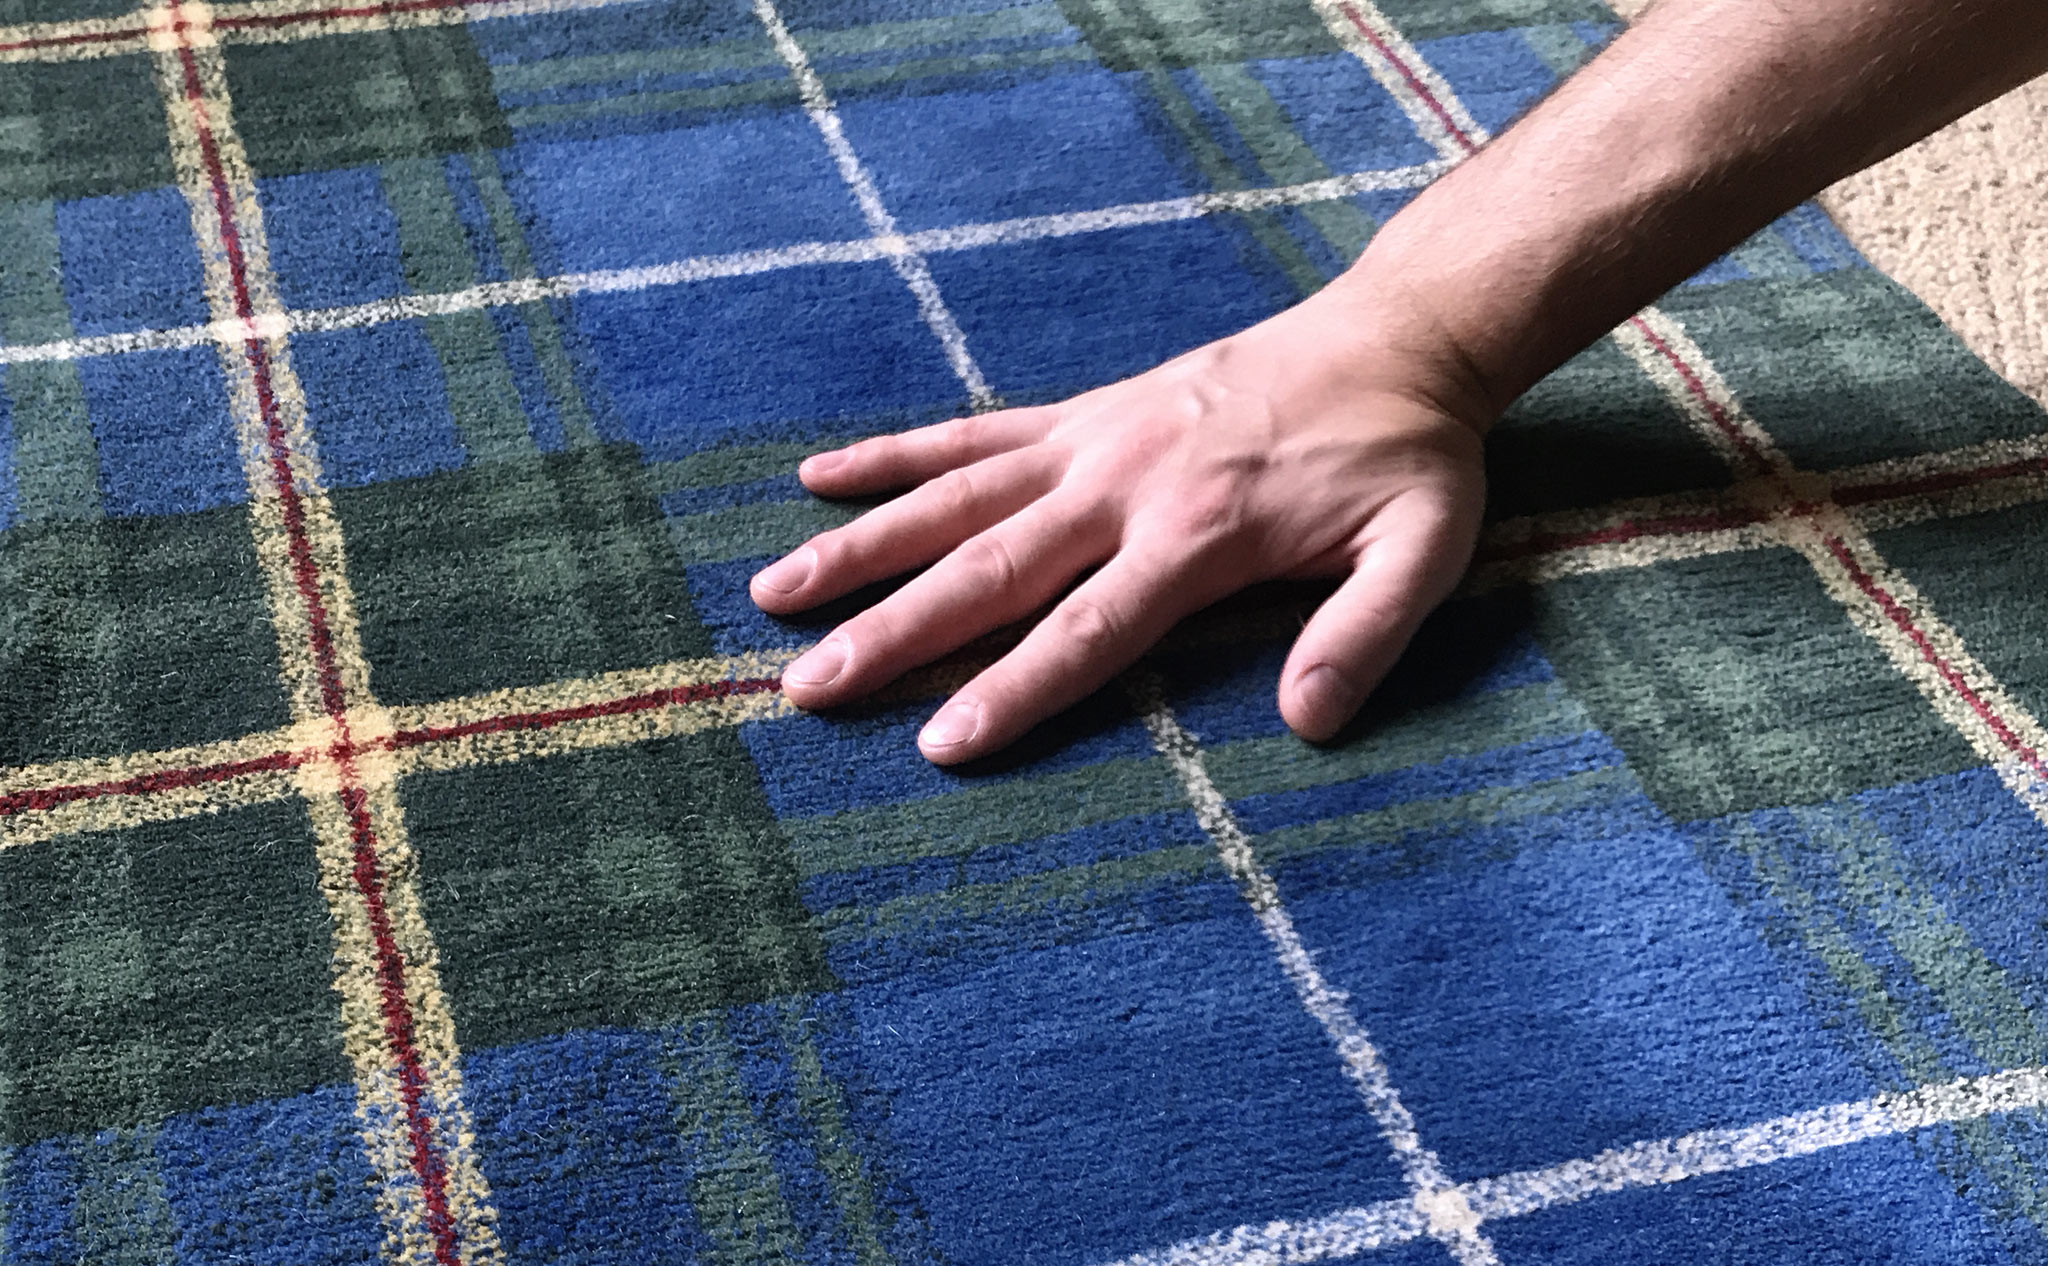 The fastidious notion of 'hand' as the sensation felt while sweeping across the face of the carpet. | Image by The Ruggist.